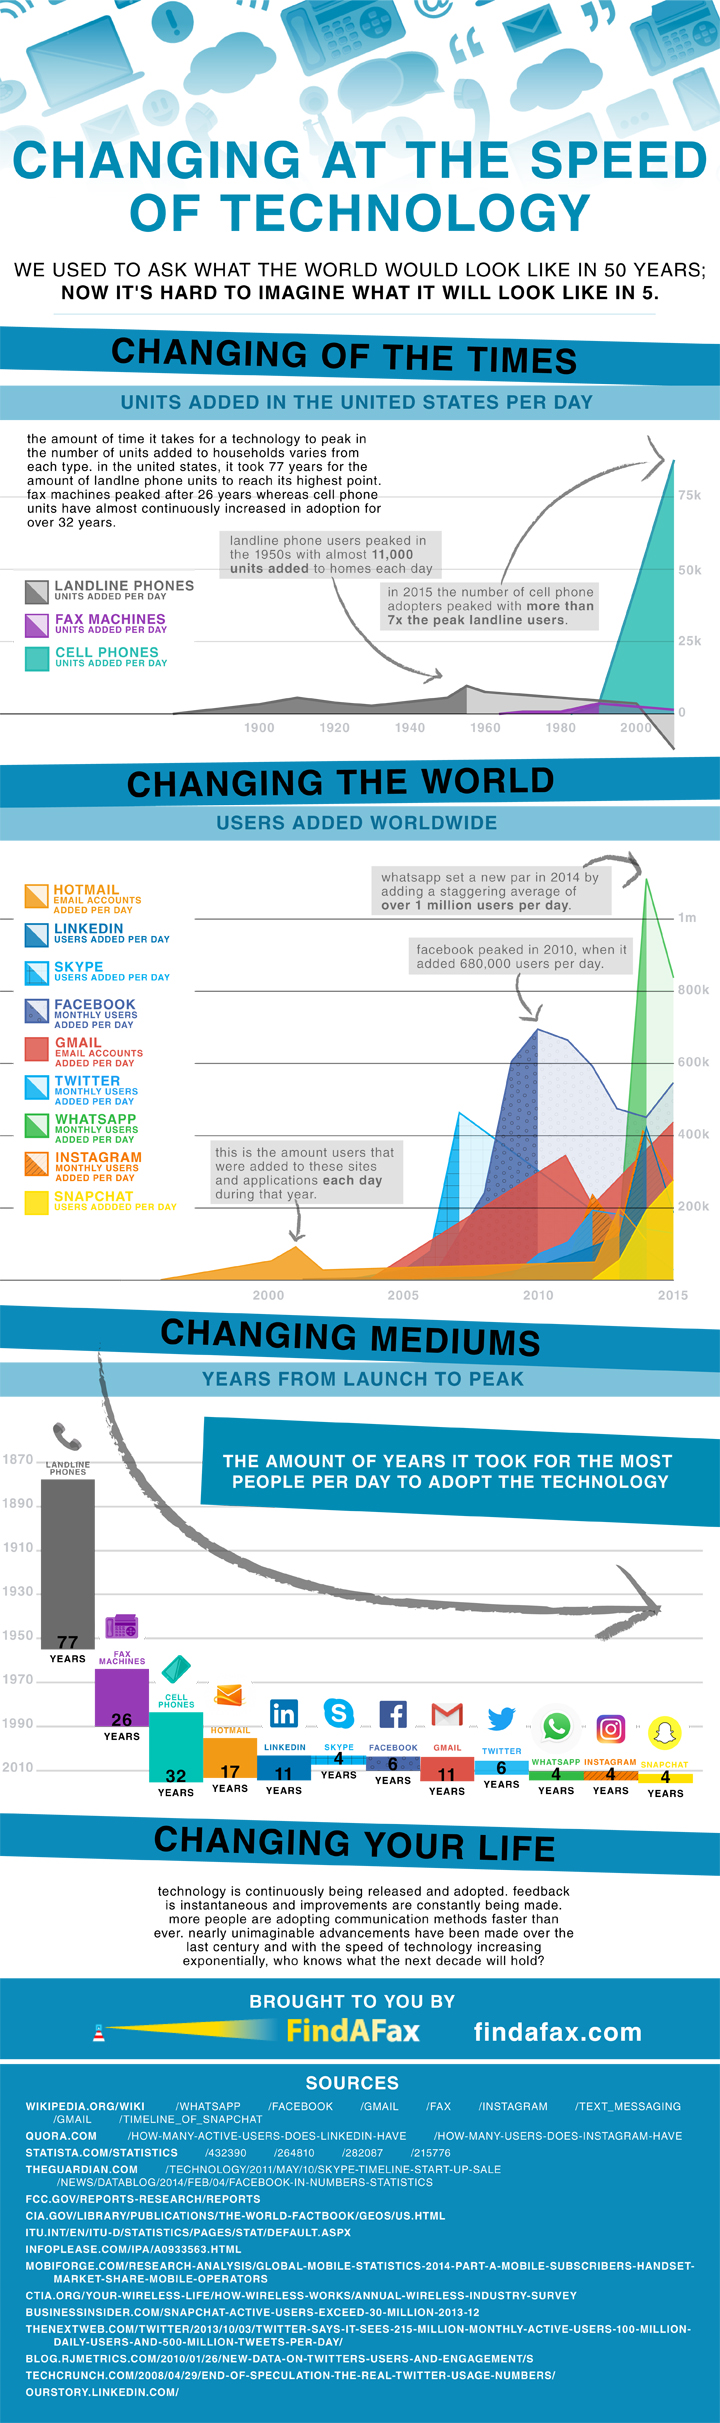 Infographic showing the accelerated adoption rates of various communication technologies from landline phones through What's App.